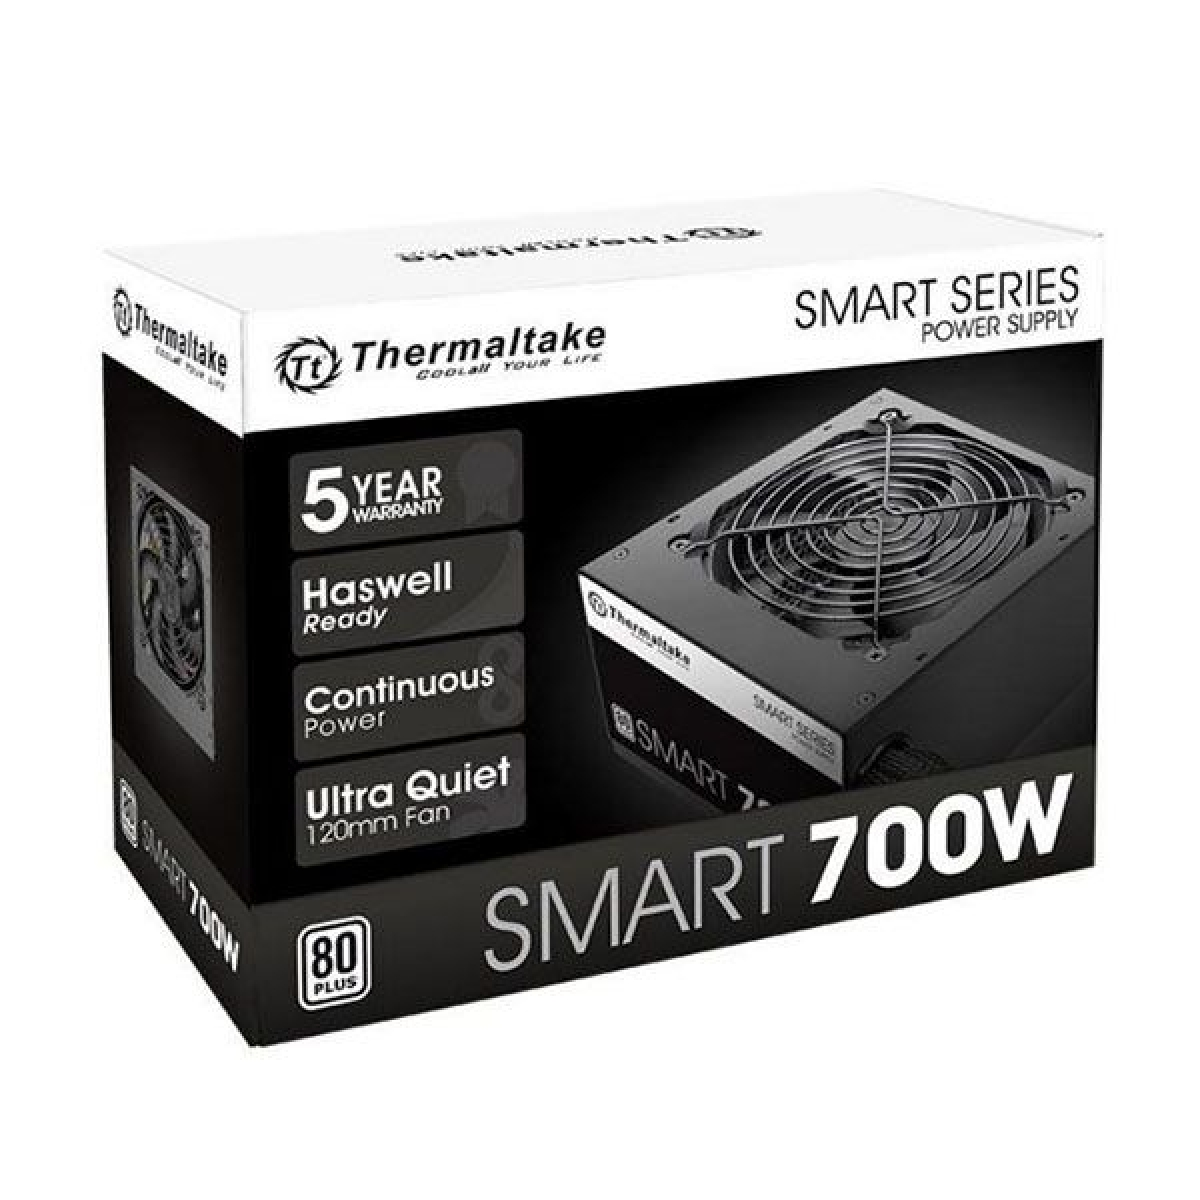 Fonte Thermaltake Smart Series 700W PS-SPD-0700 PFC Ativo Cabos Flat